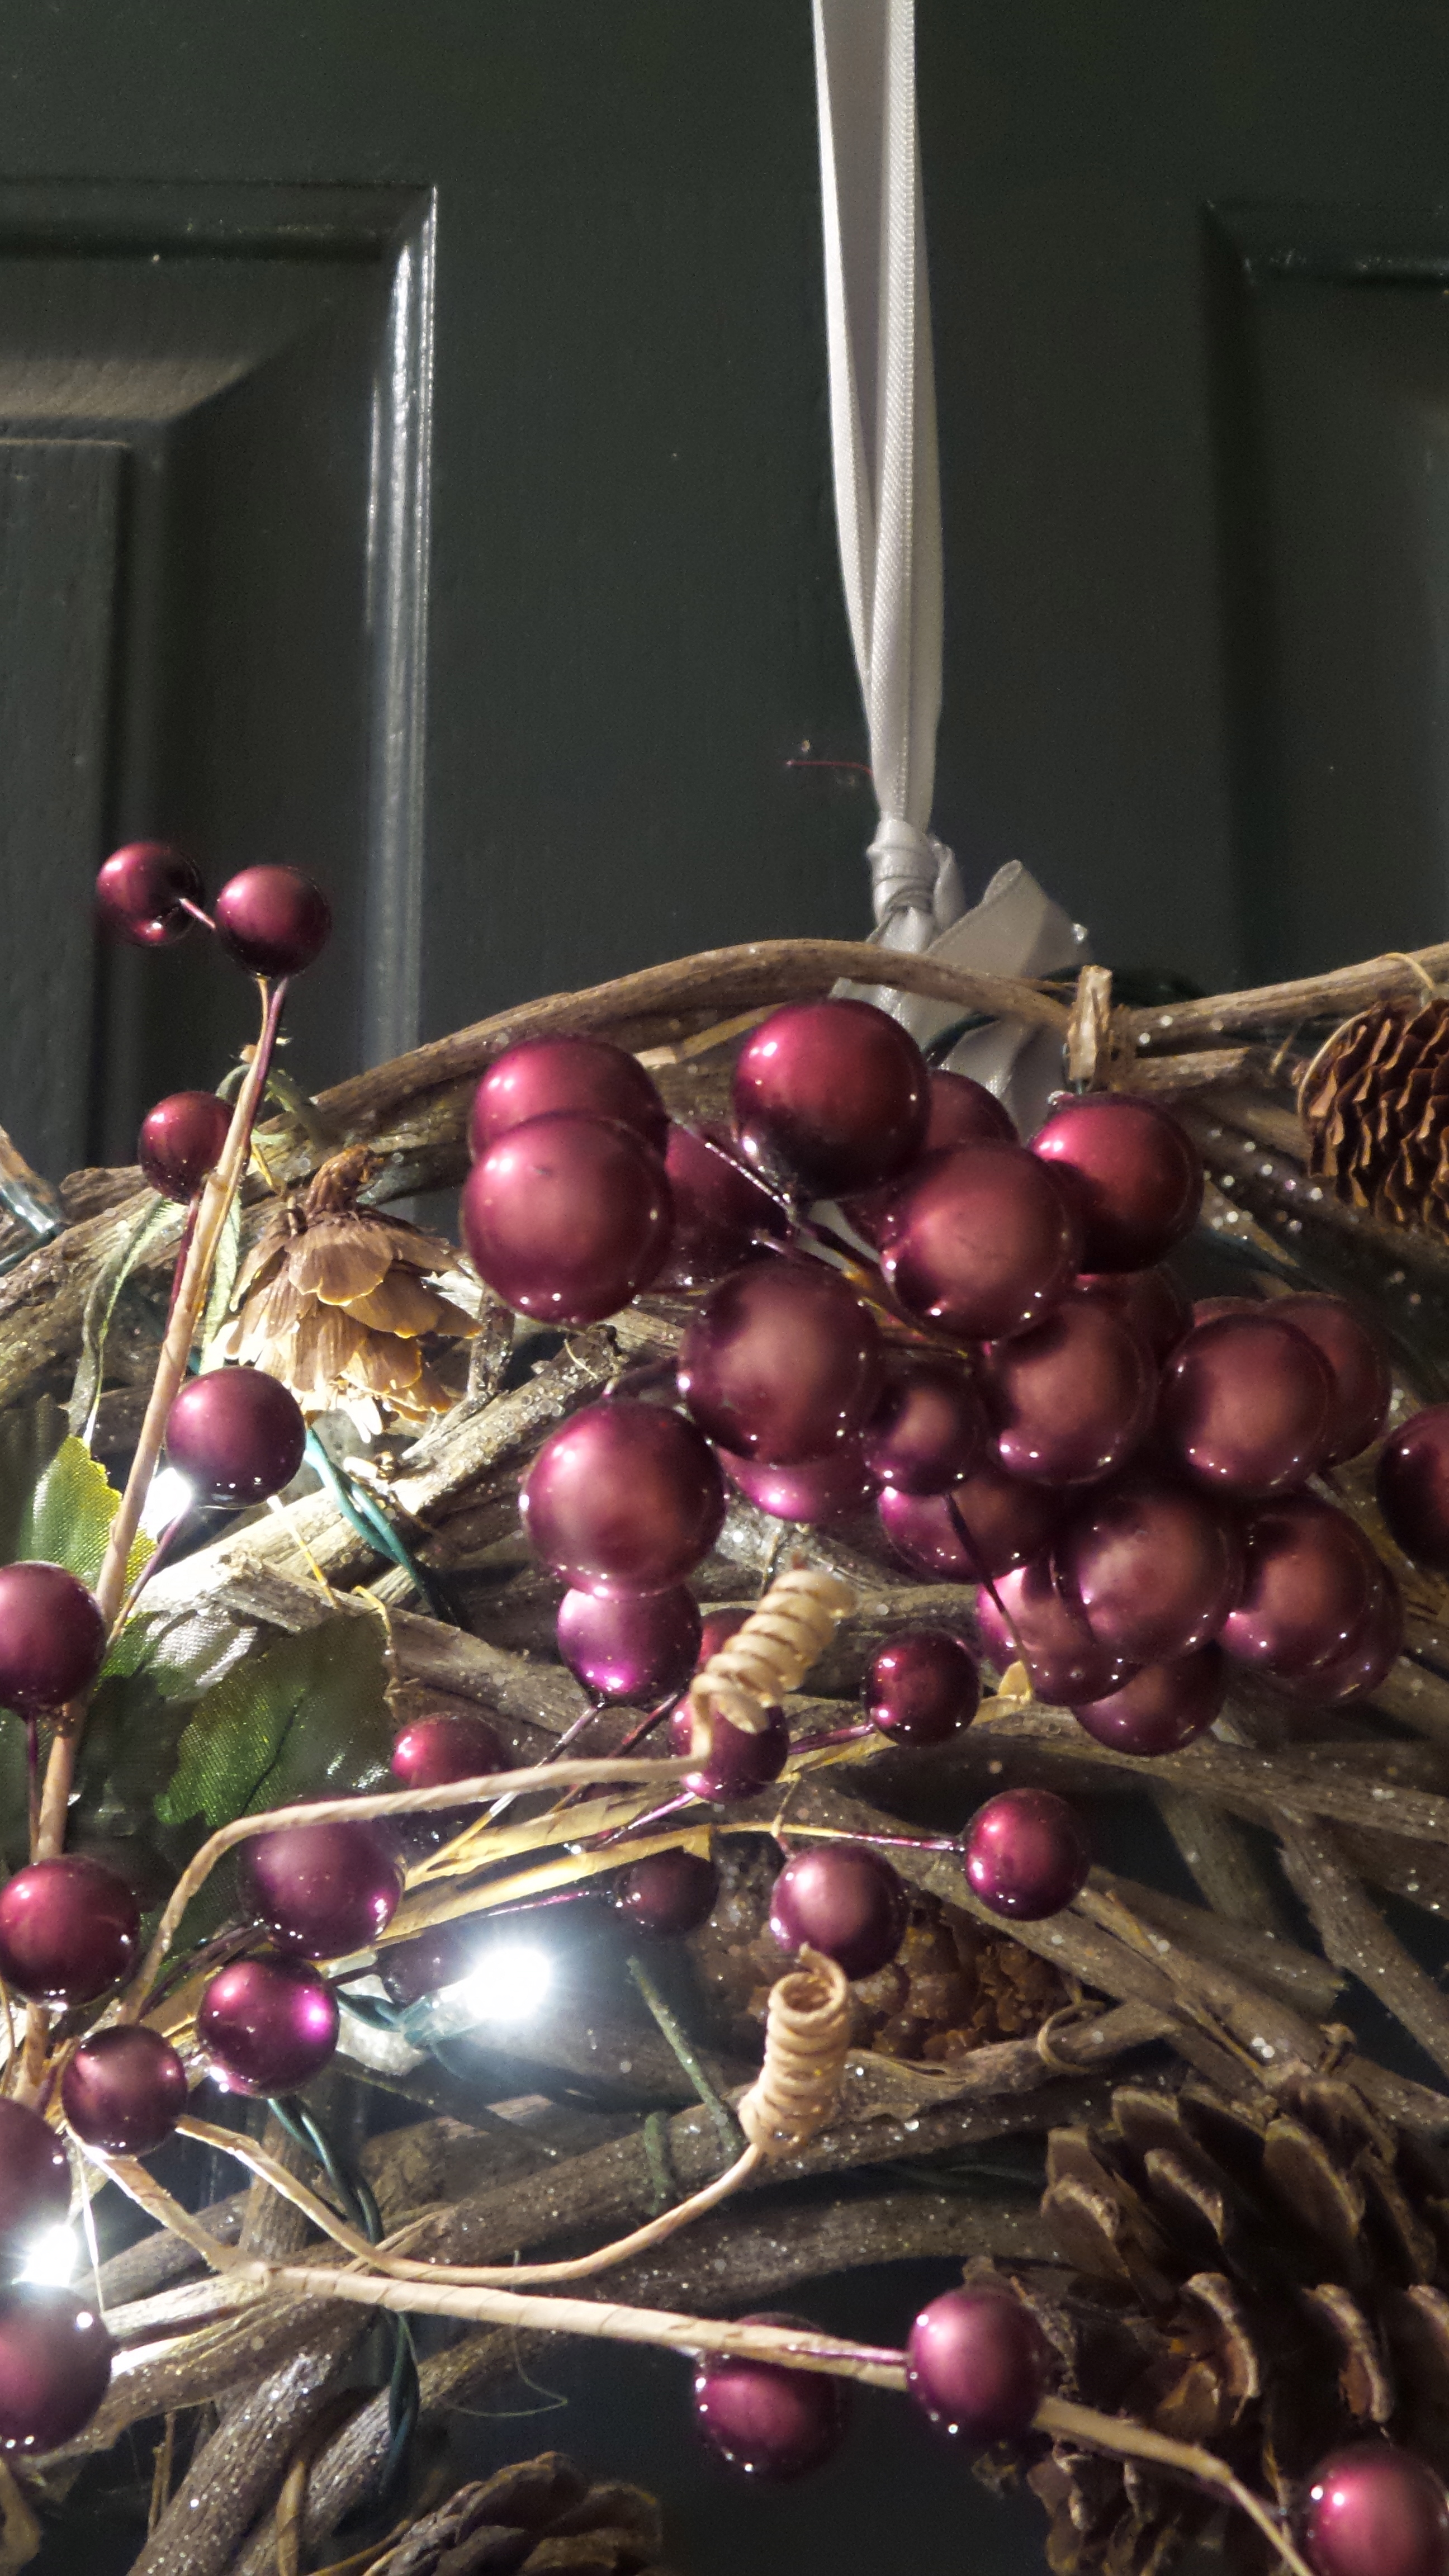 Fruit over the door christmas decoration - Measure The Ribbon So That When Draped Over The Top Of Your Front Door It Hits The Top Of Where You Would Want Your Wreaths To Hang From On Each Side Of